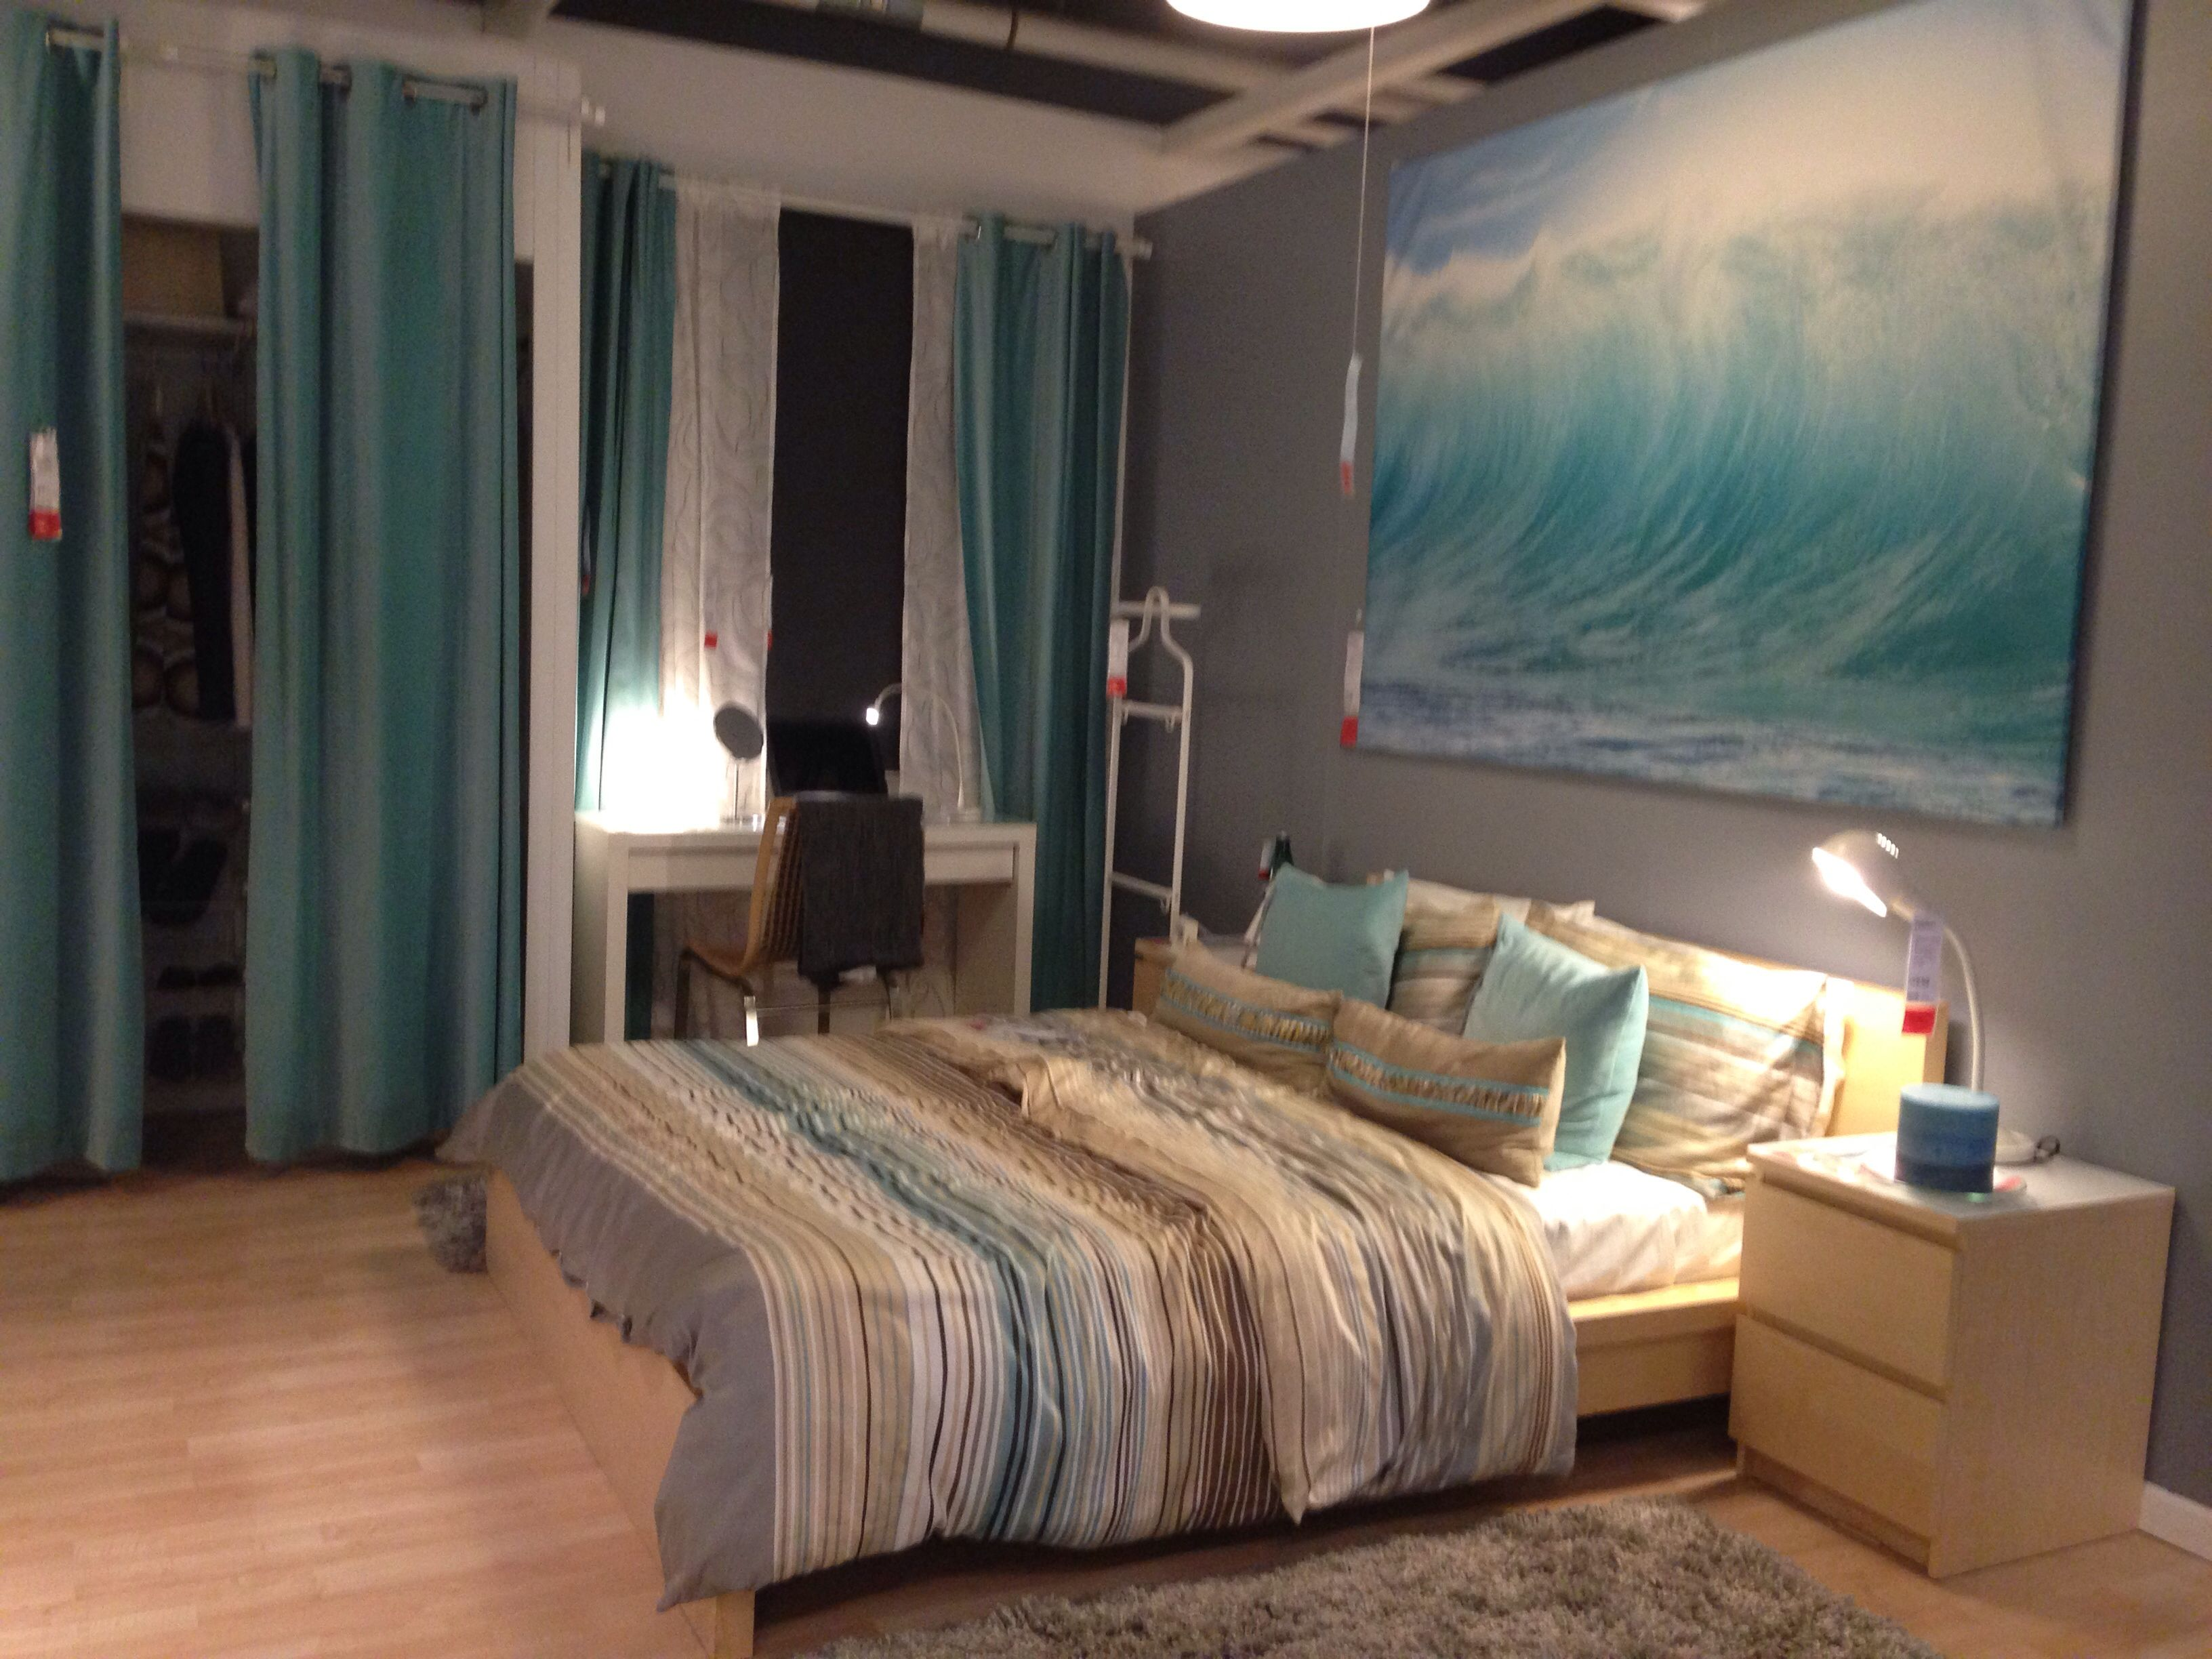 Ocean Themed Kitchen Decor Beach Themed Bedroom Everything Is Sold At Ikea Love It